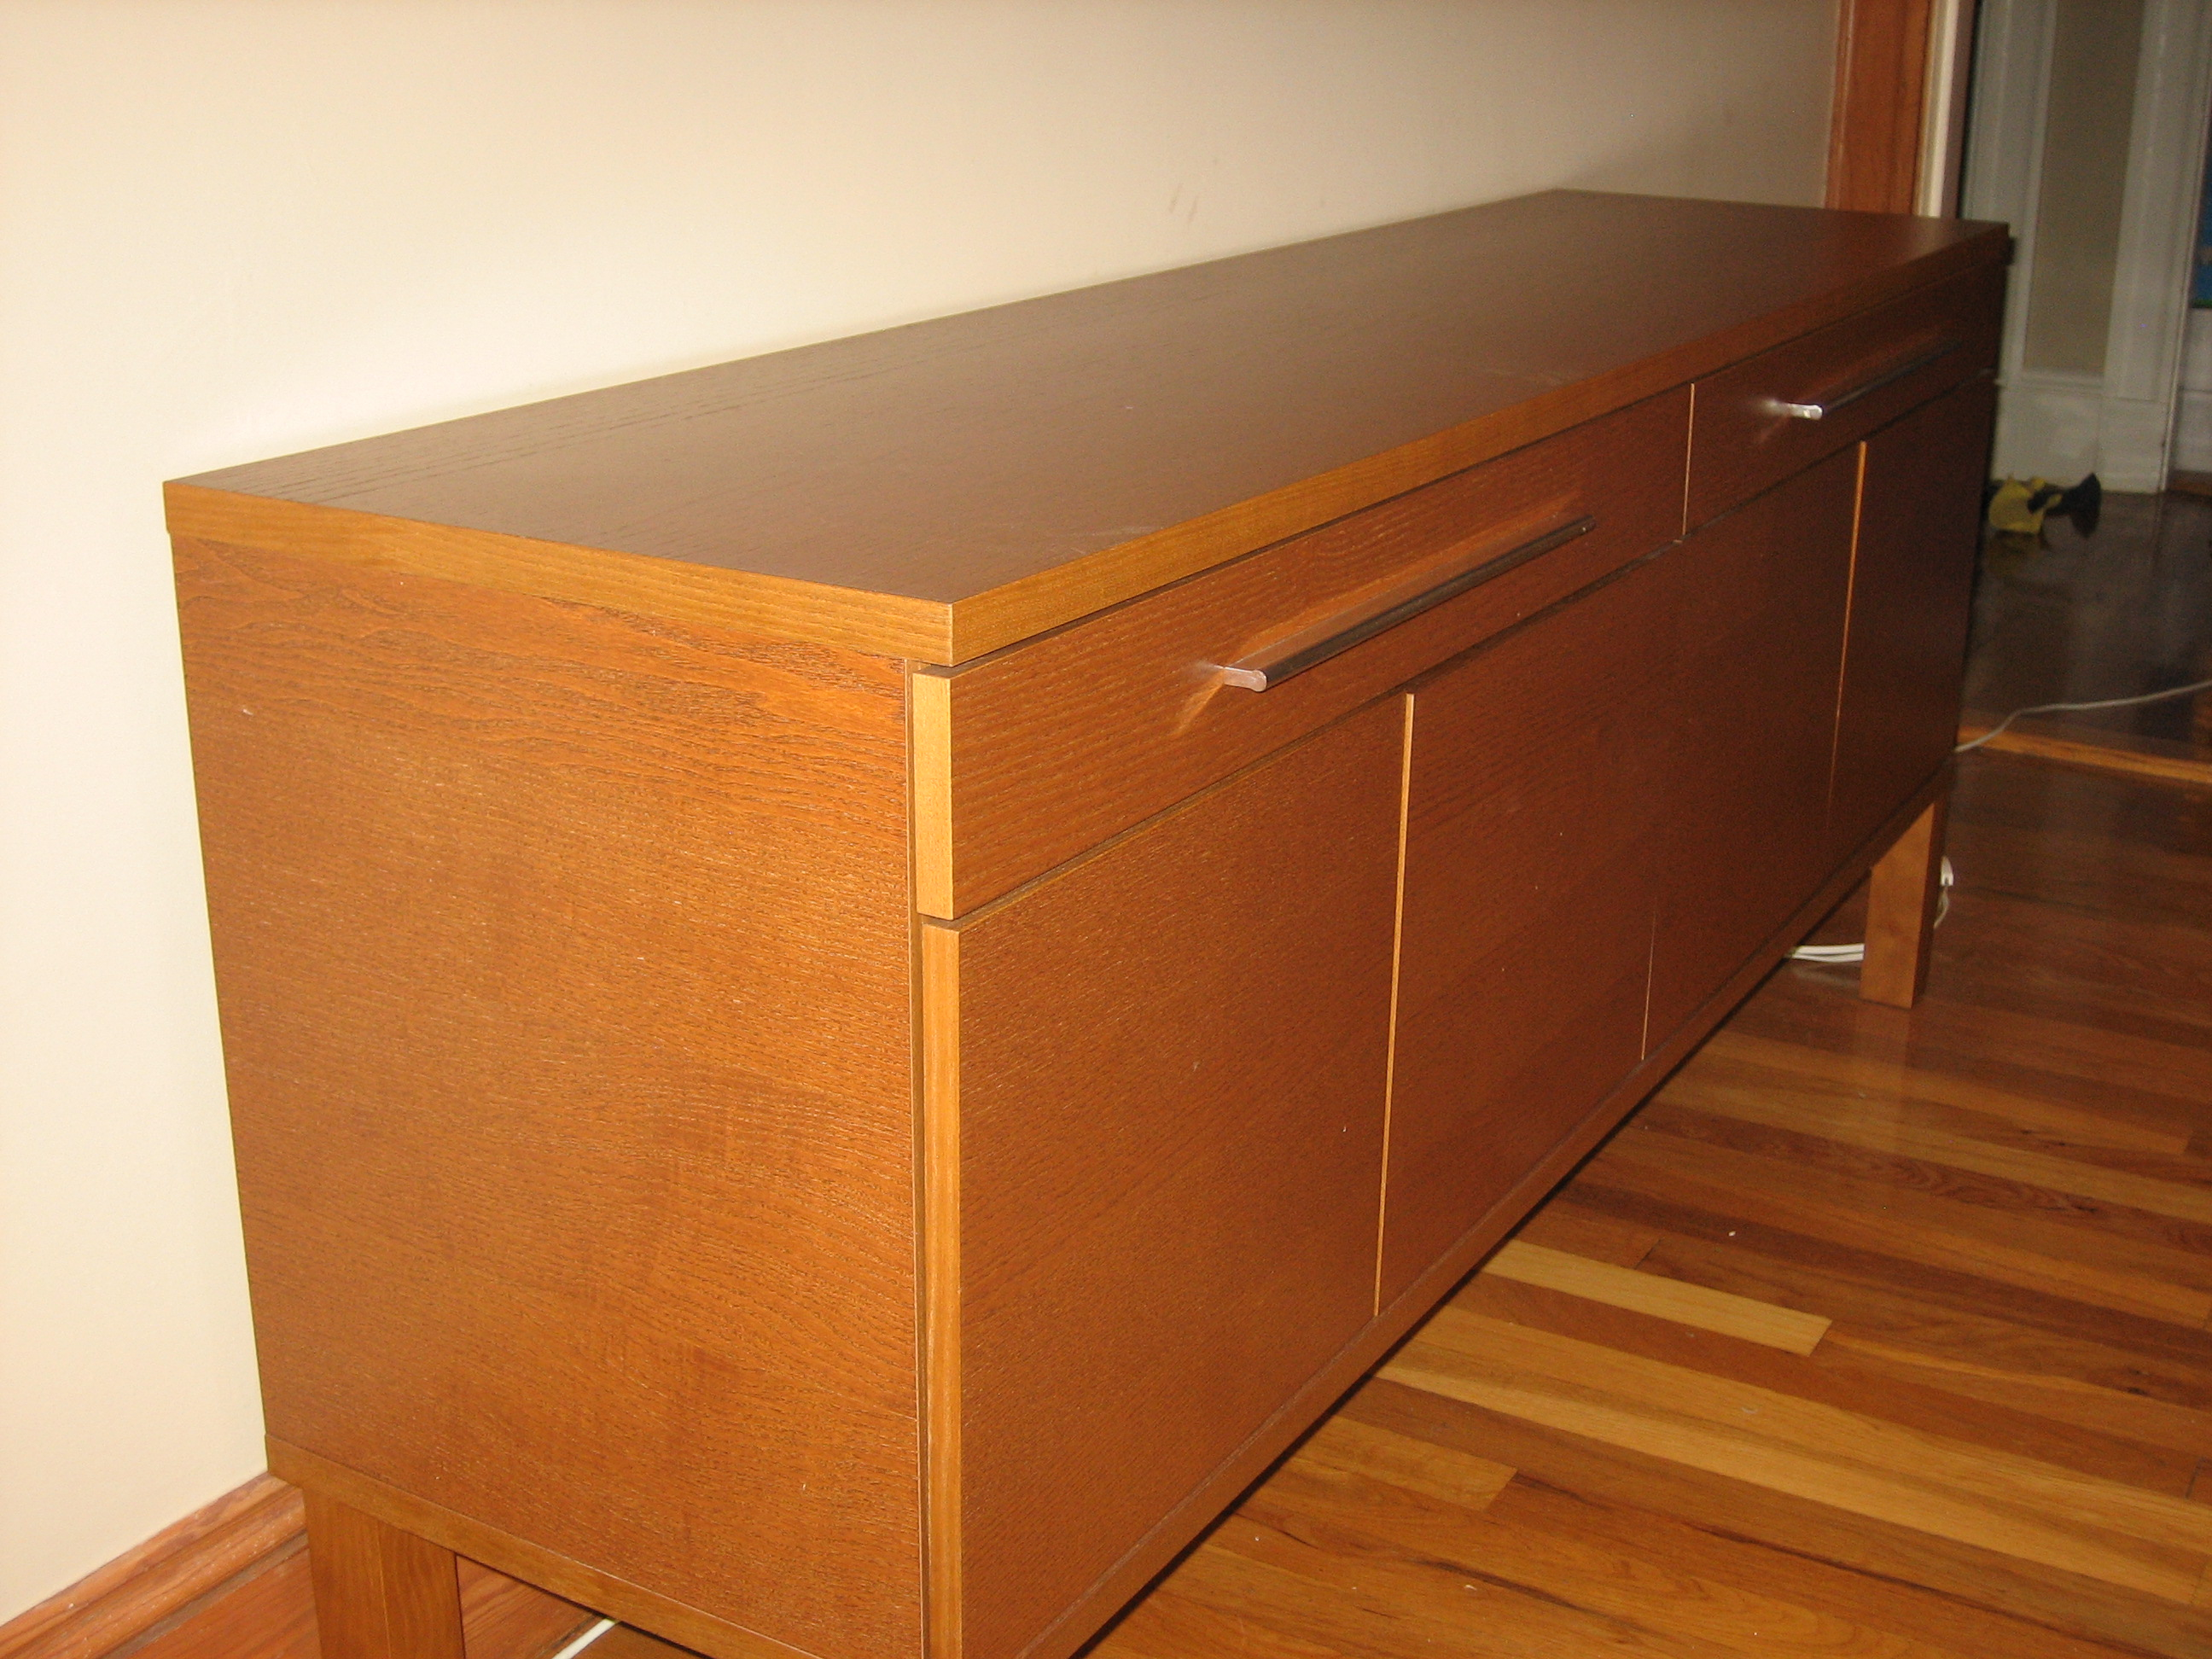 Ikea Bjursta Dining Table And Sideboard